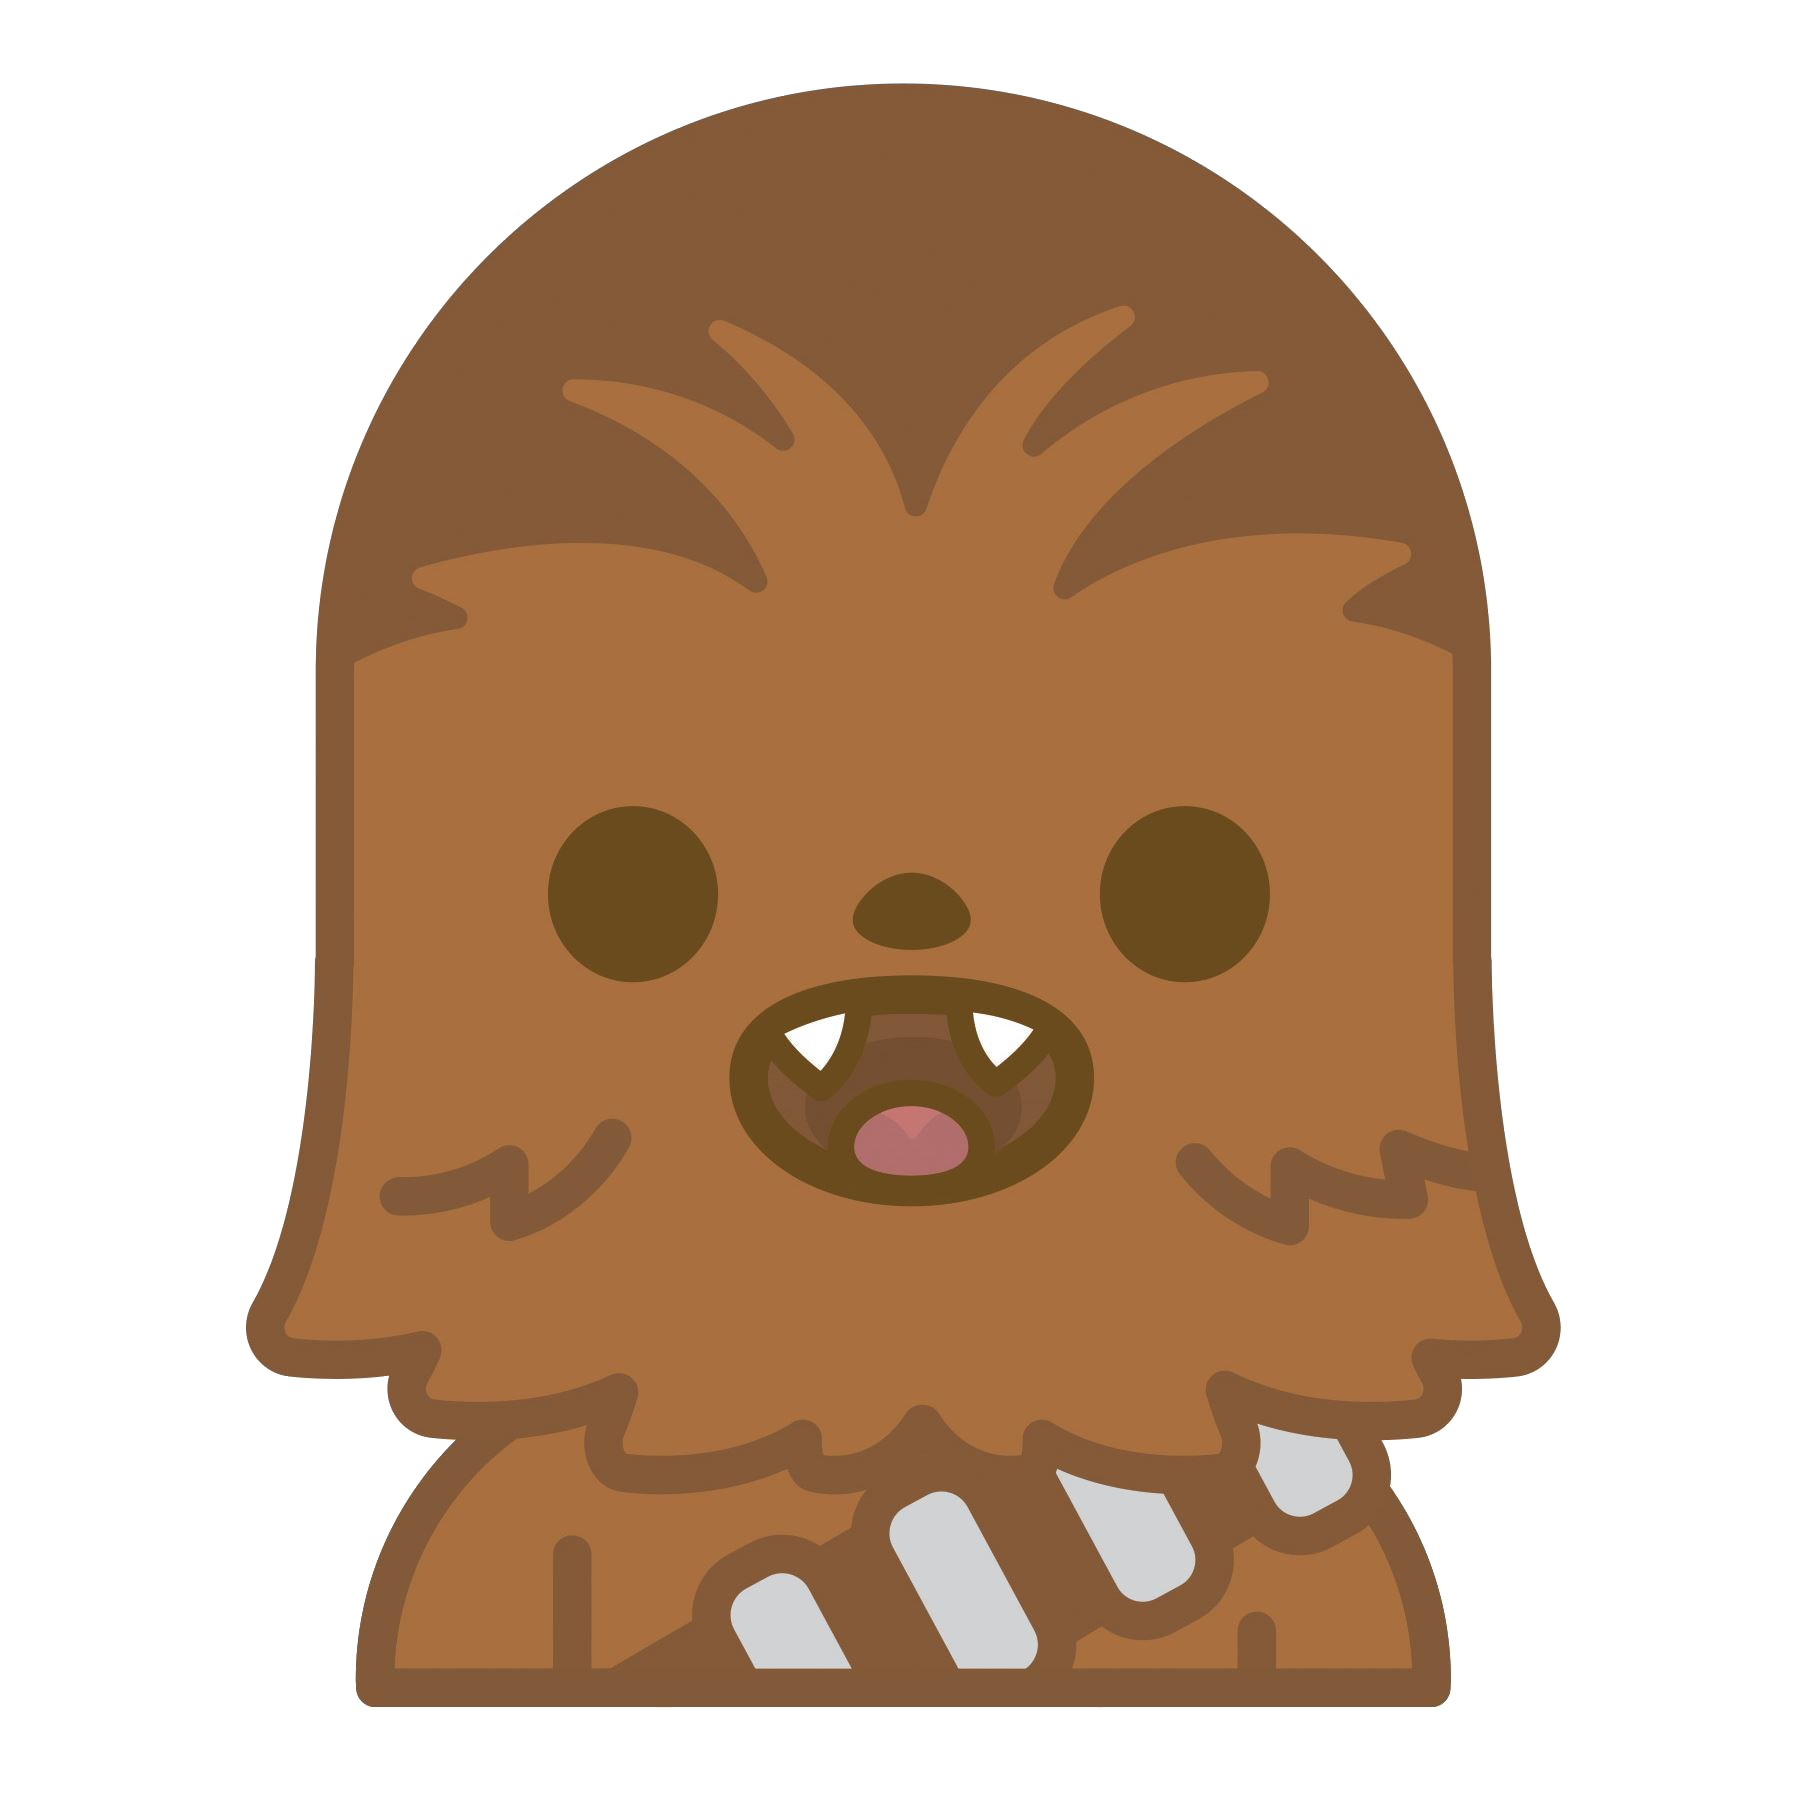 svg freeuse library Star emoji chewbacca . Wars clipart